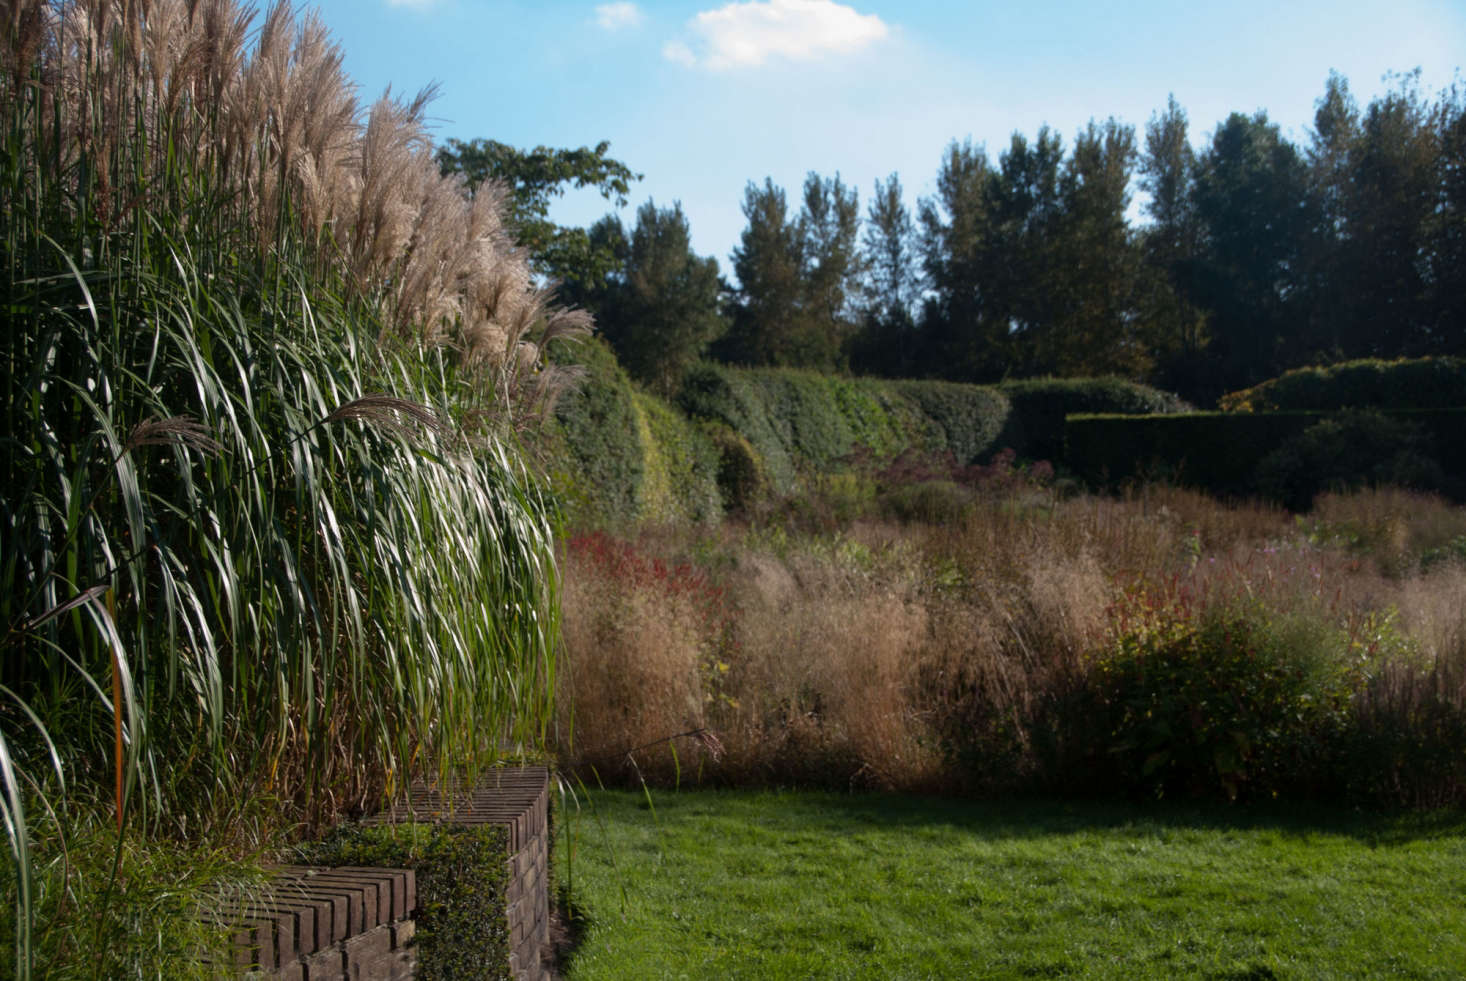 Miscanthus sinensis 'Malepartus' is one of garden designer Piet Oudolf's signature grasses.Photograph courtesy of My Garden School. For more, see Garden Design: Learning to Plant the Piet Oudolf Way.